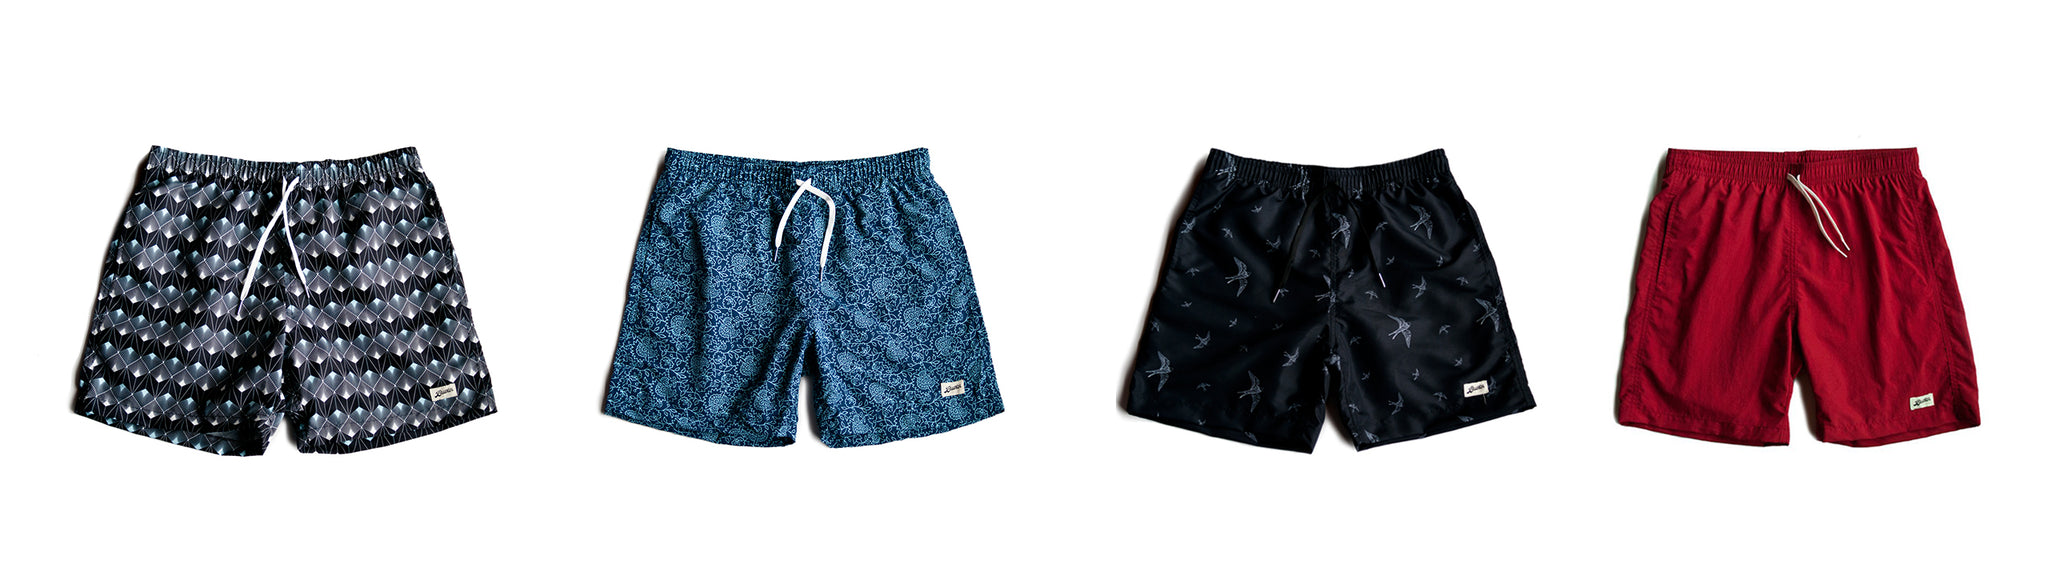 Men's swimwear by Bather